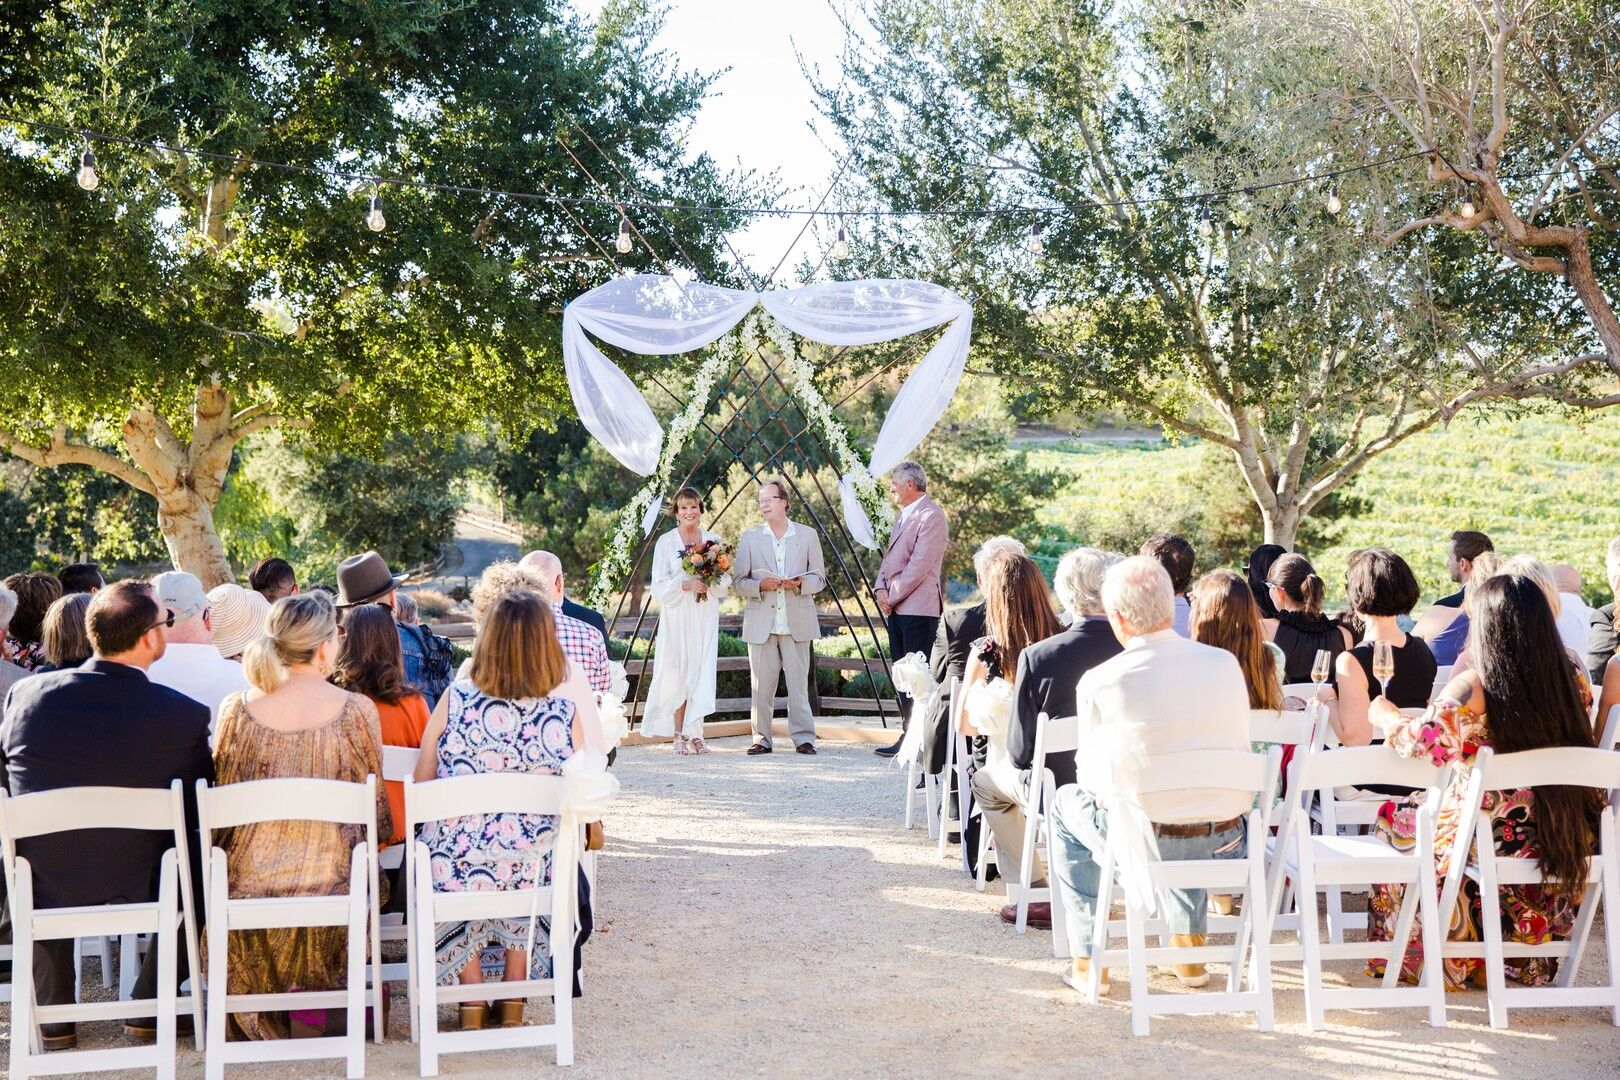 www.santabarbarawedding.com | Venue: Firestone Vineyard | Photographer: Just Kiss Collective | Wedding Dress: BHLDN | Wedding Ceremony